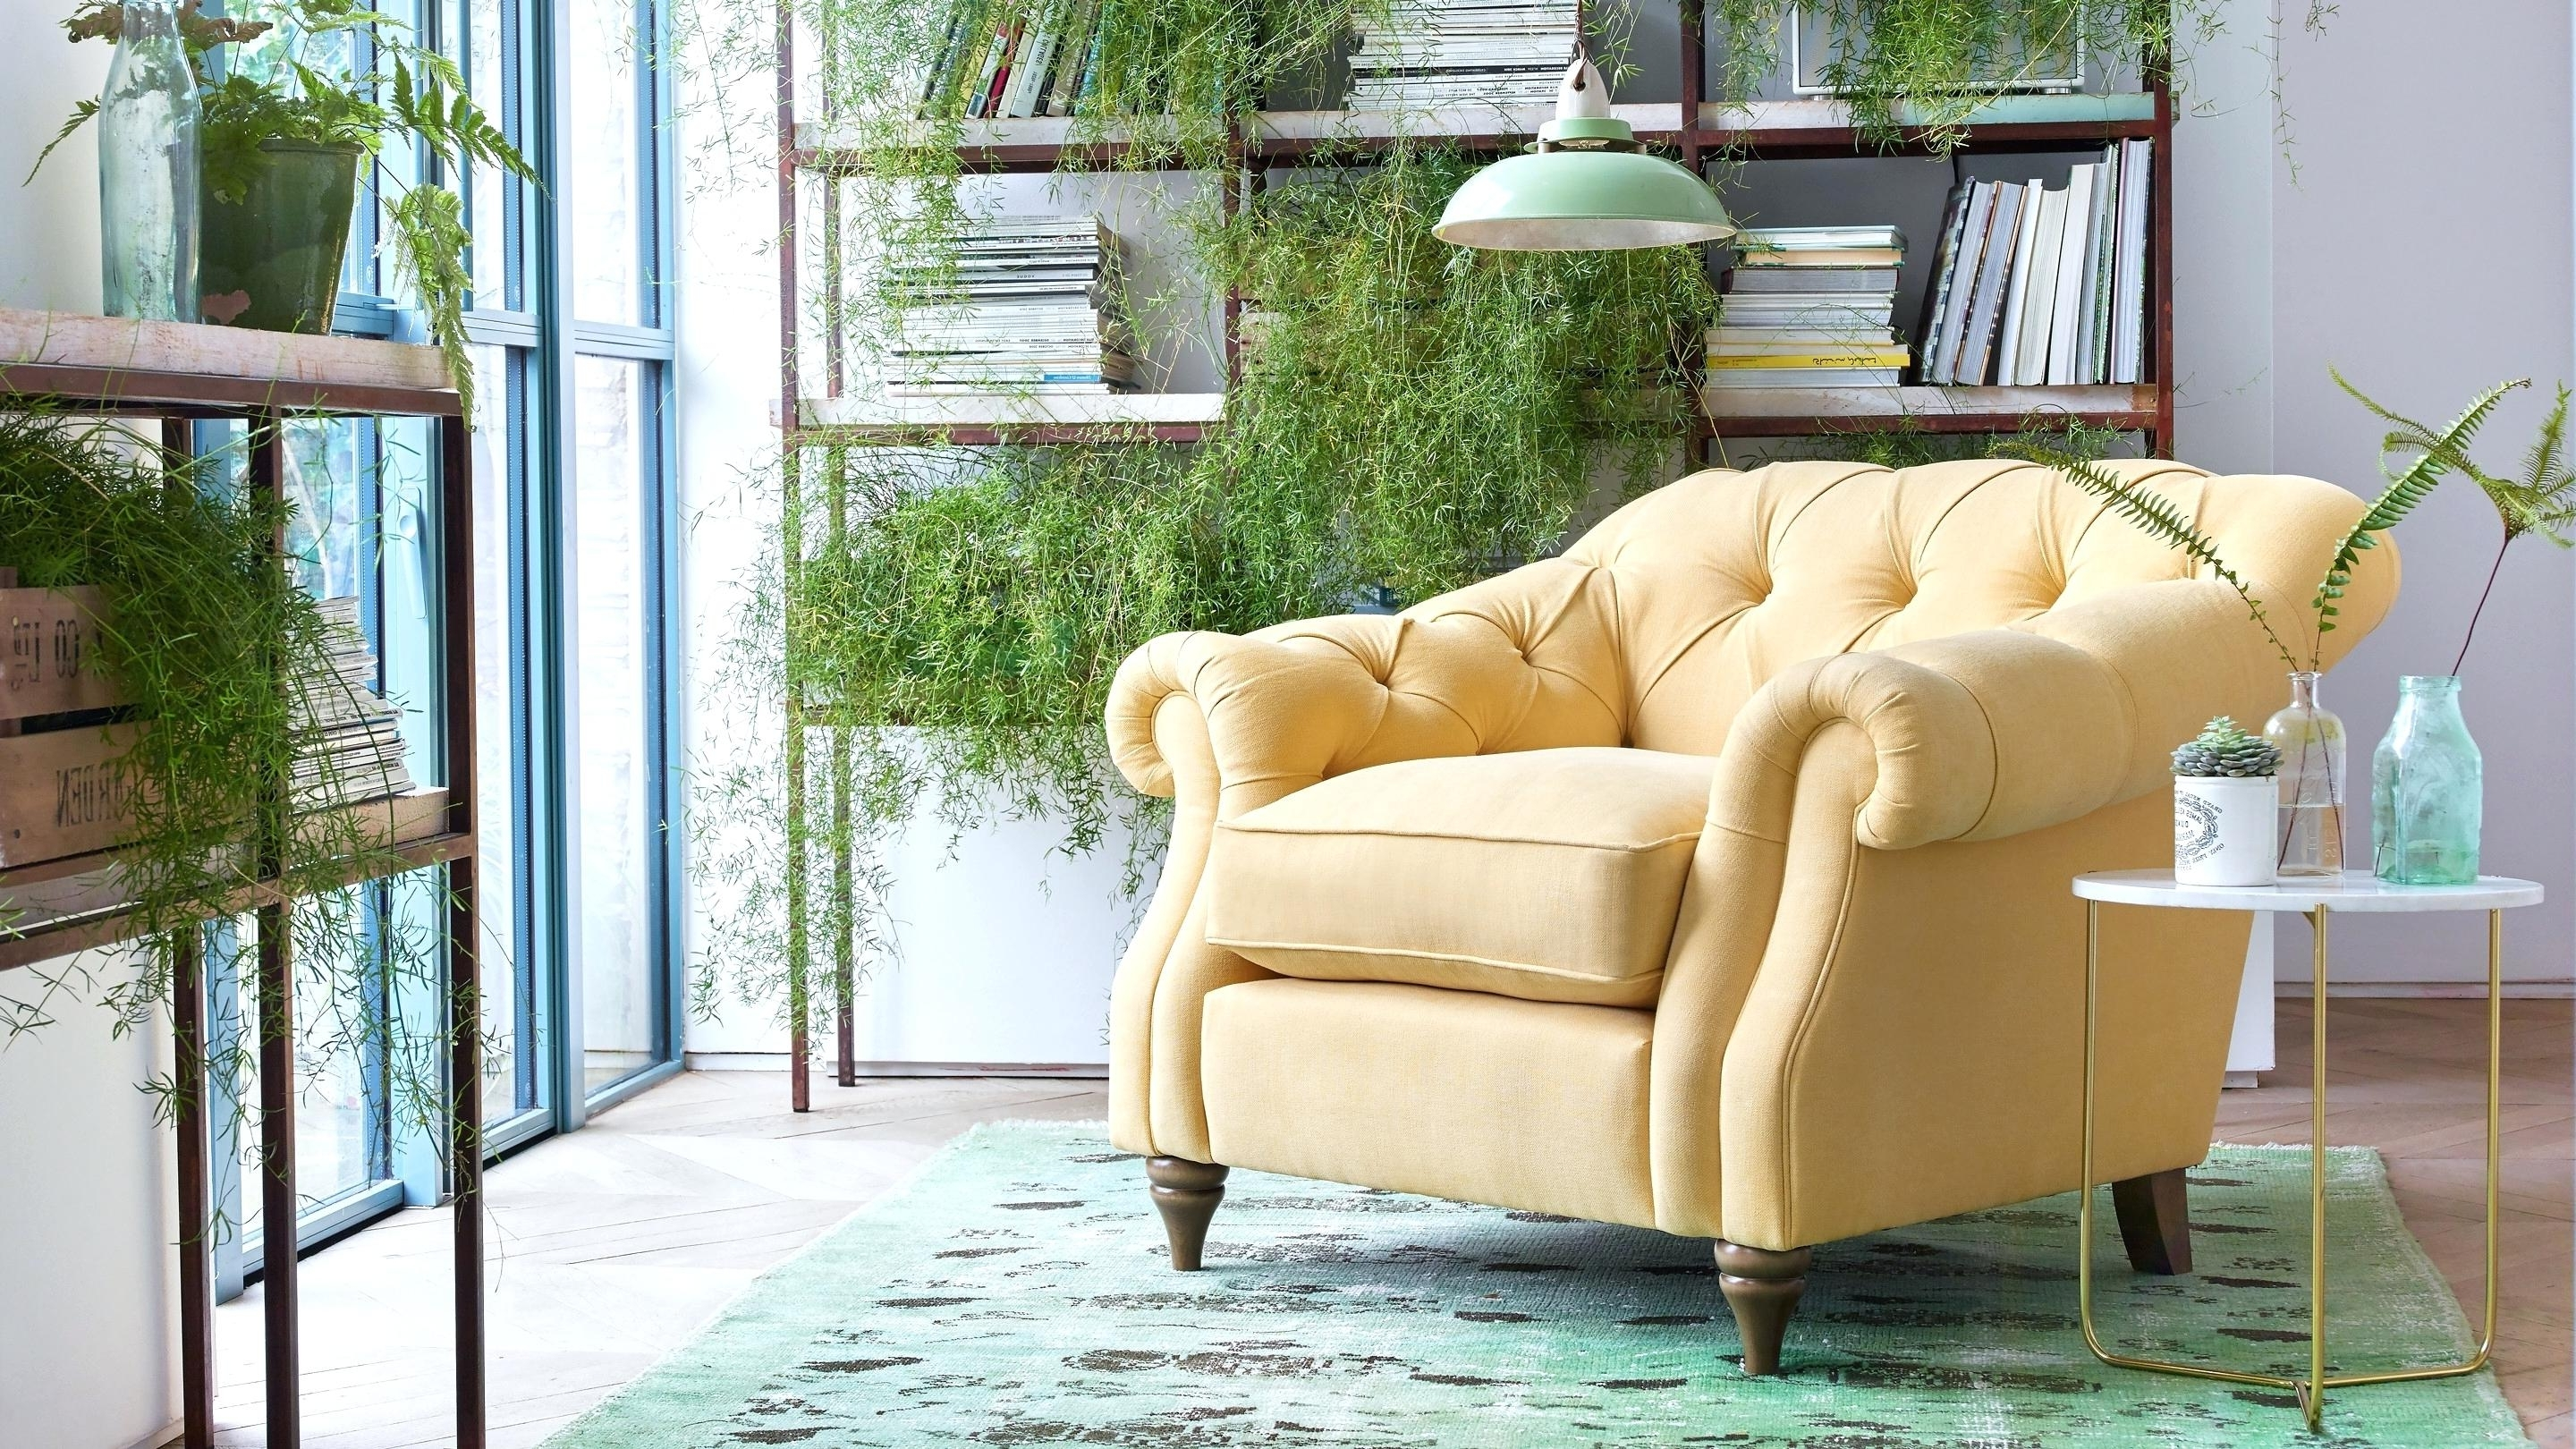 Decoration: Types Of Sofas Full Size Fabric Old Fashioned Sofa Pertaining To Most Popular Old Fashioned Sofas (View 2 of 20)